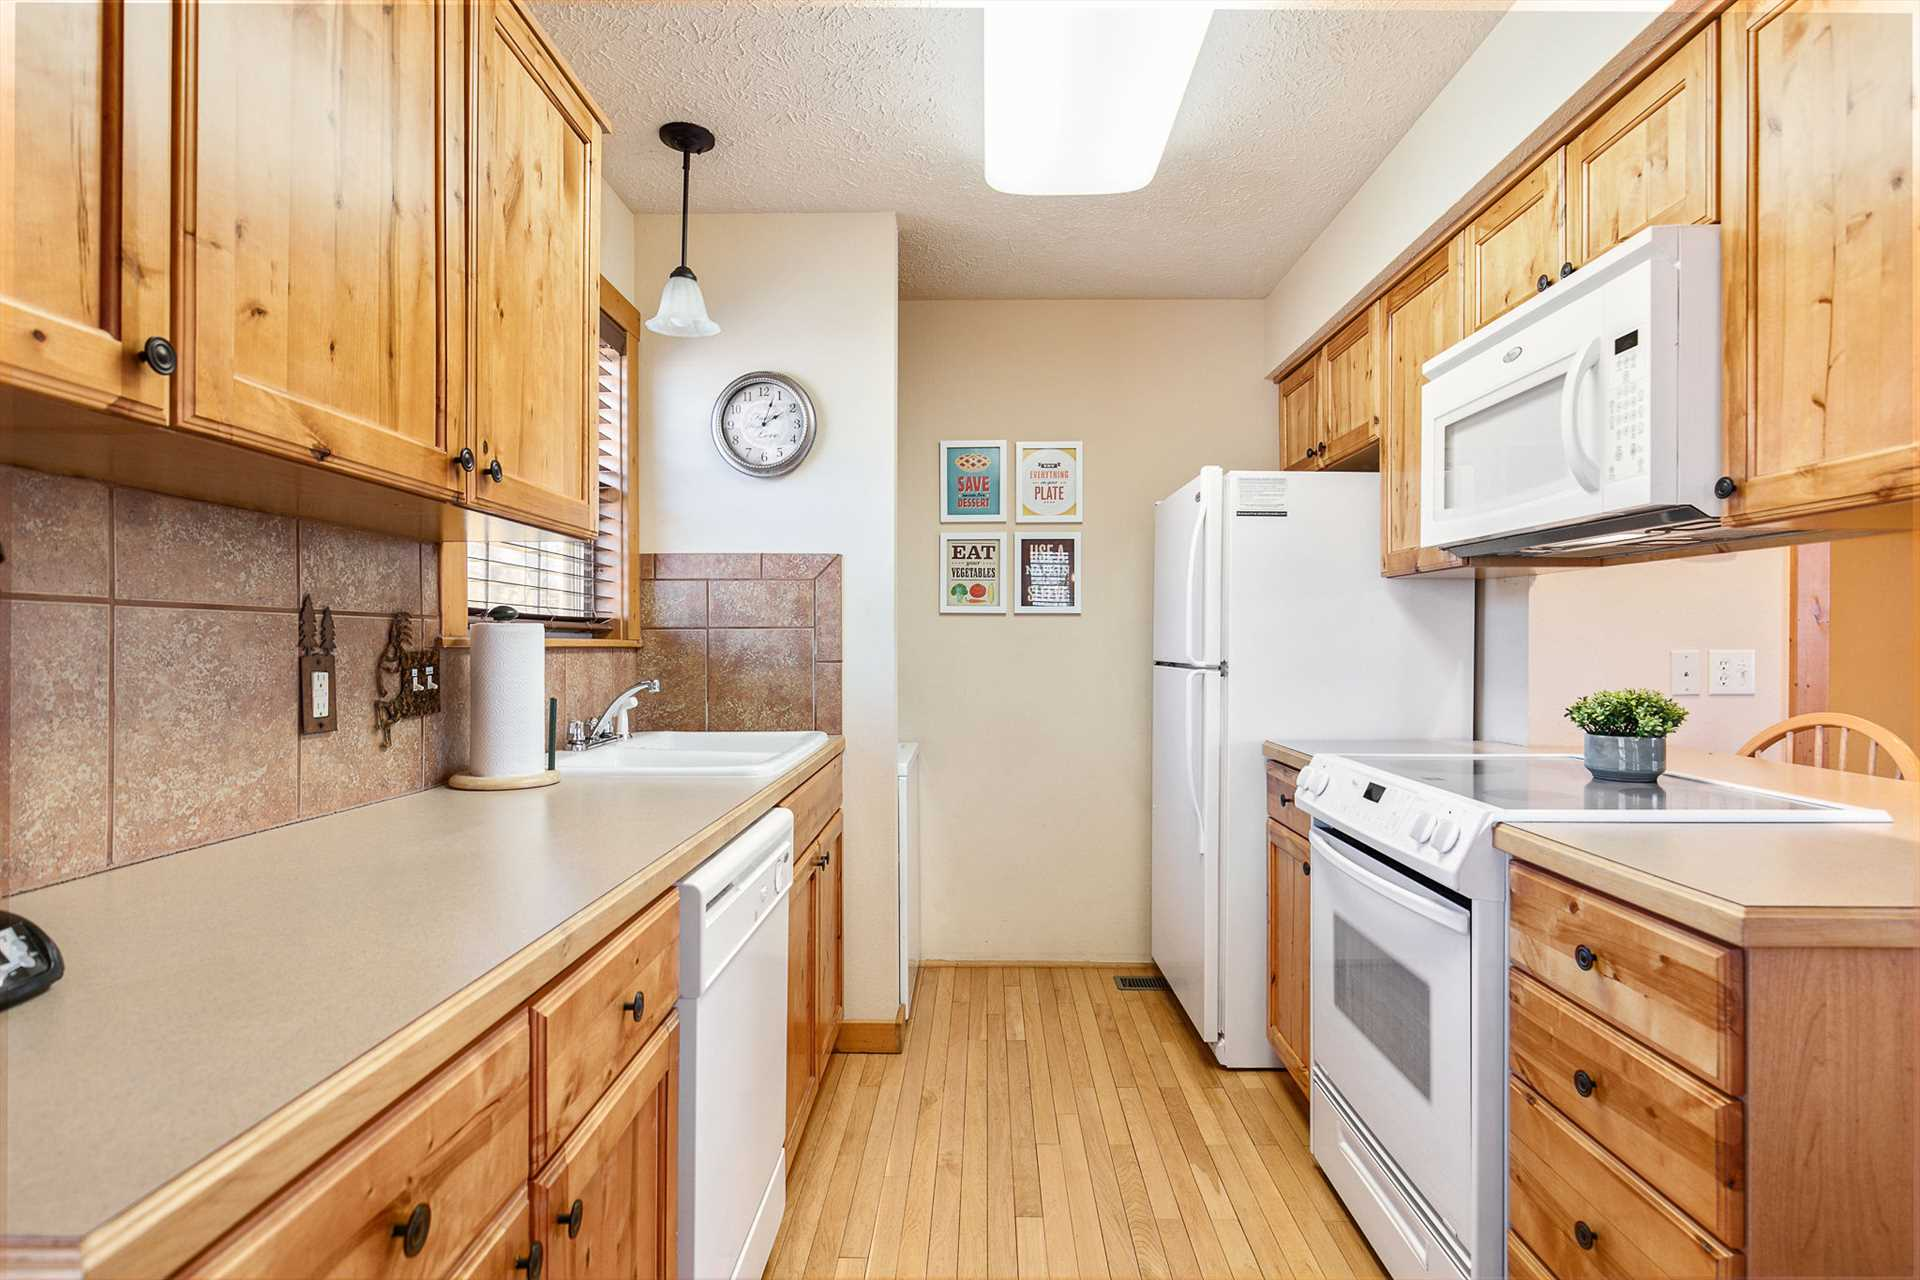 The kitchen includes full-sized appliances.